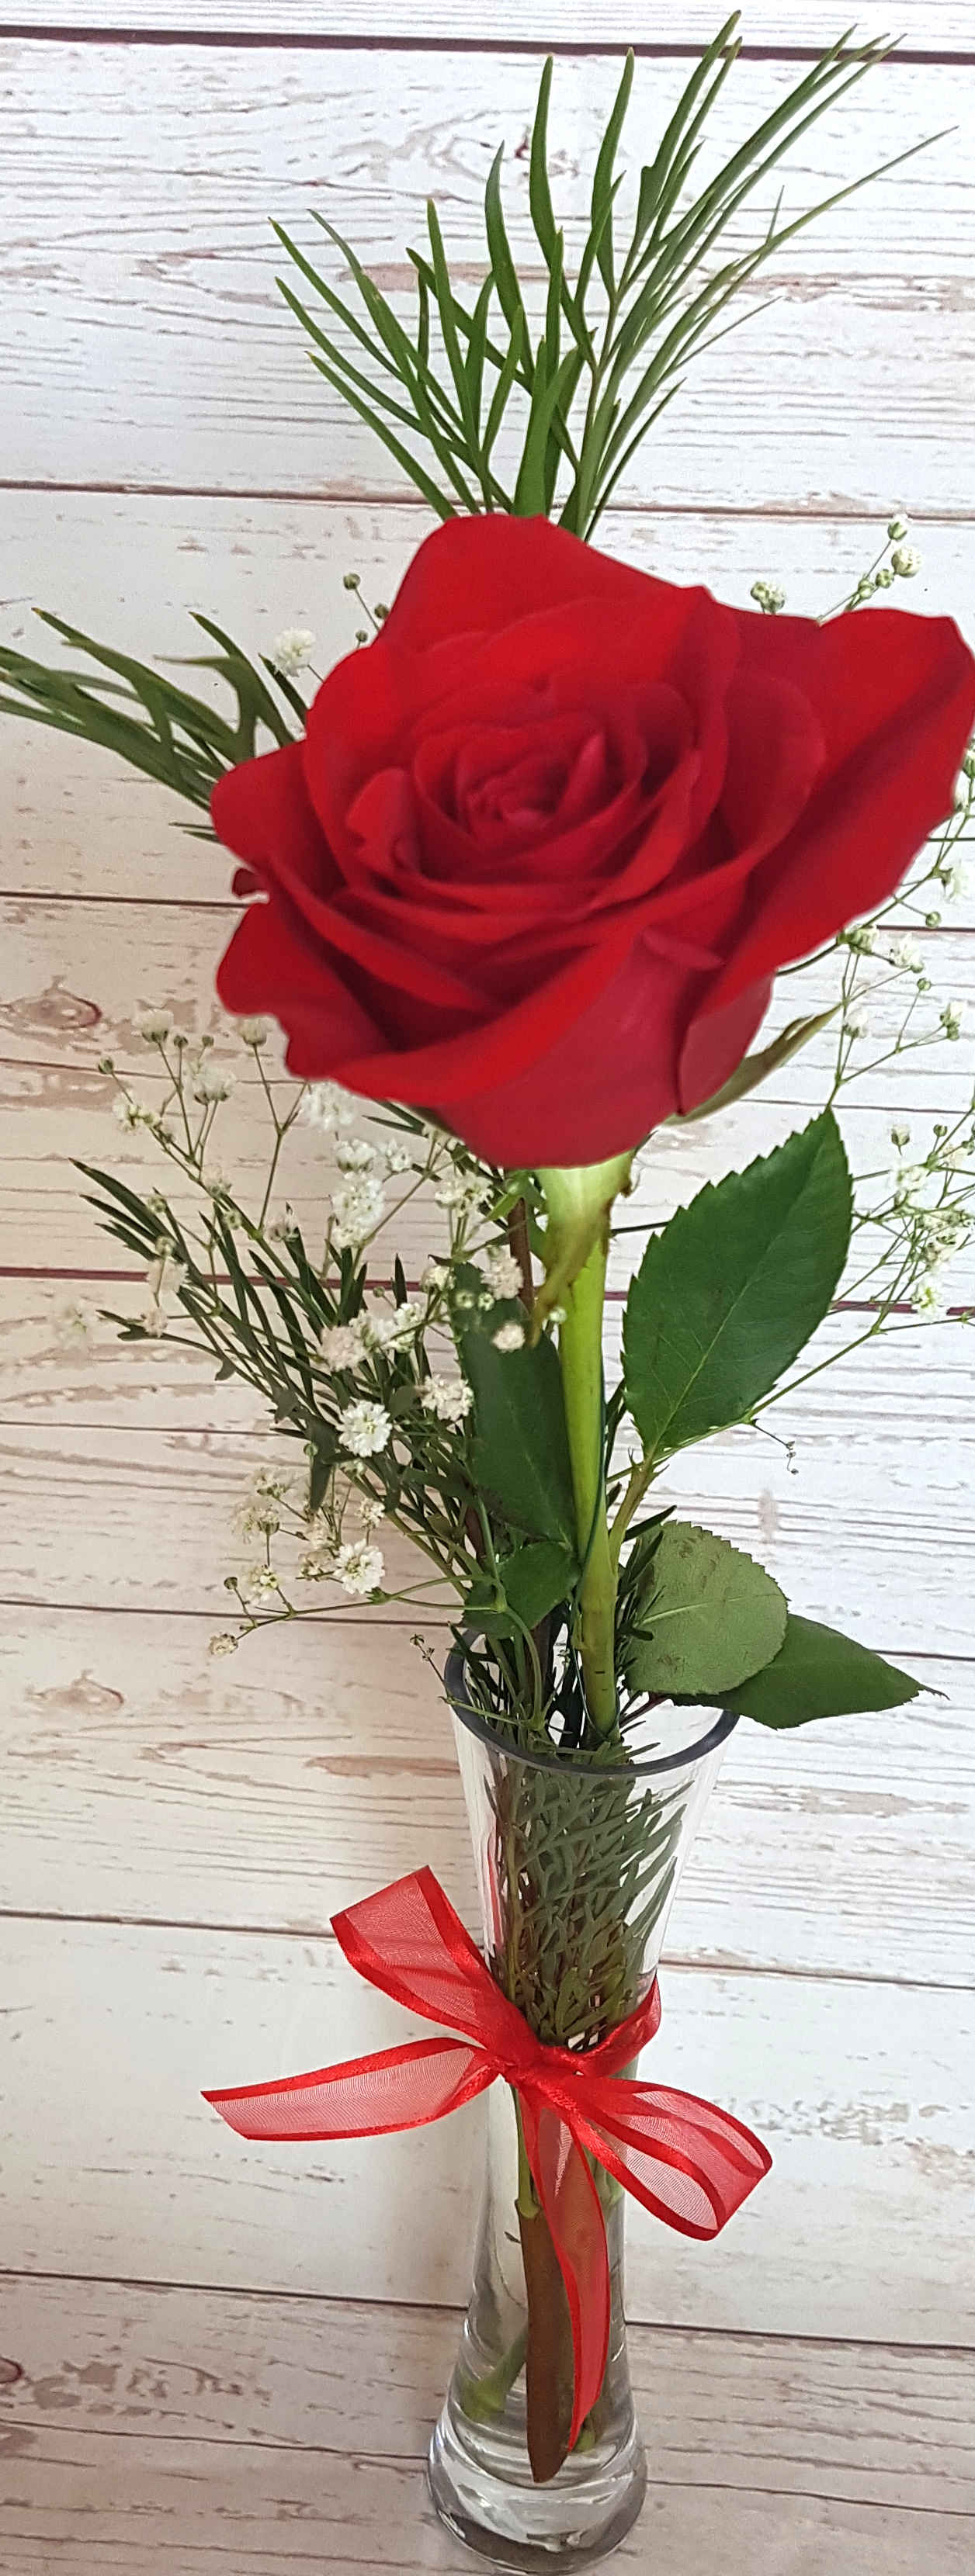 A single red rose, presented in vase with babies breath and greenery.